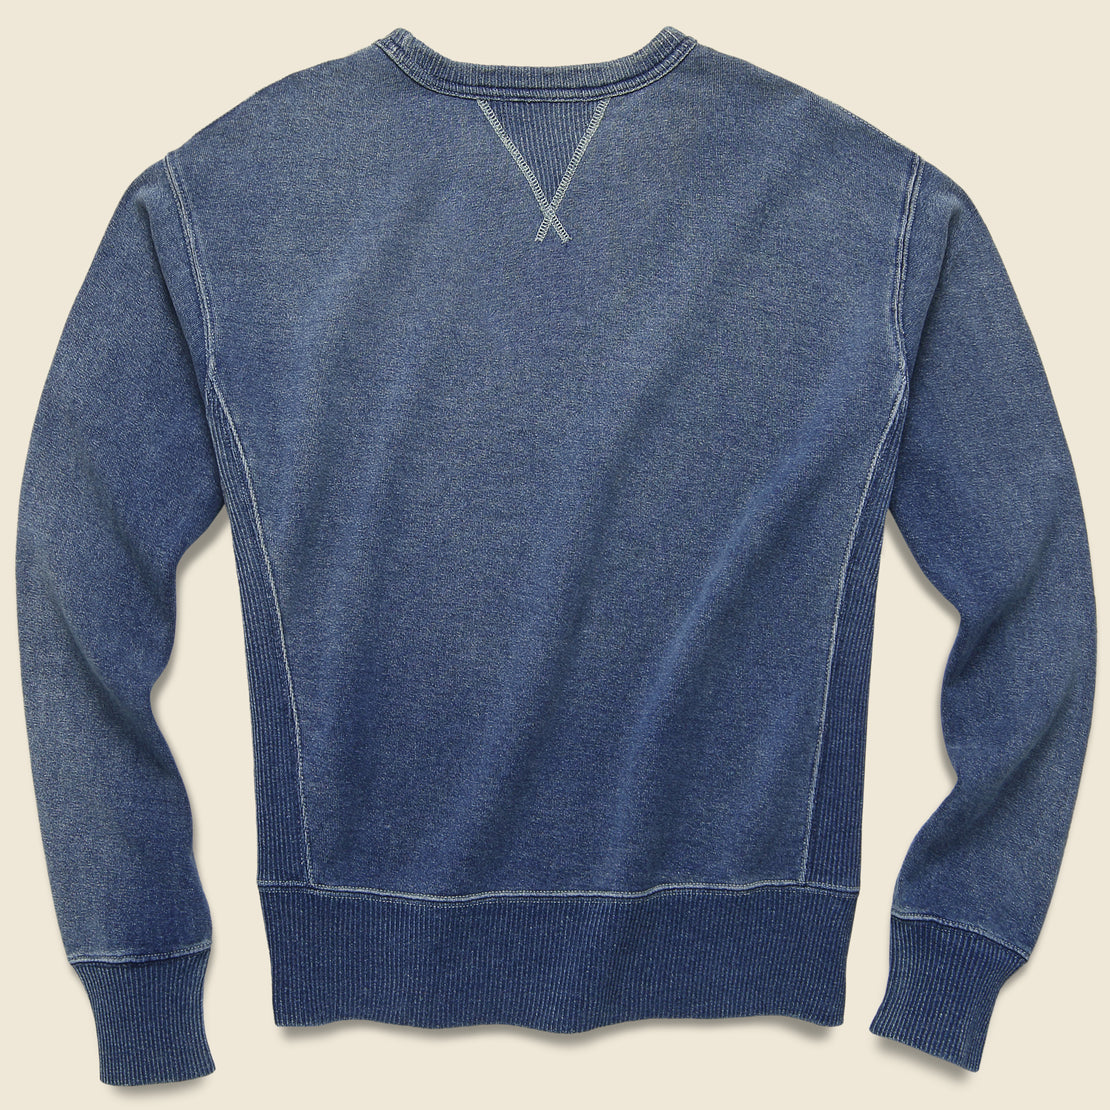 Double V Crewneck Sweatshirt - Washed Blue Indigo